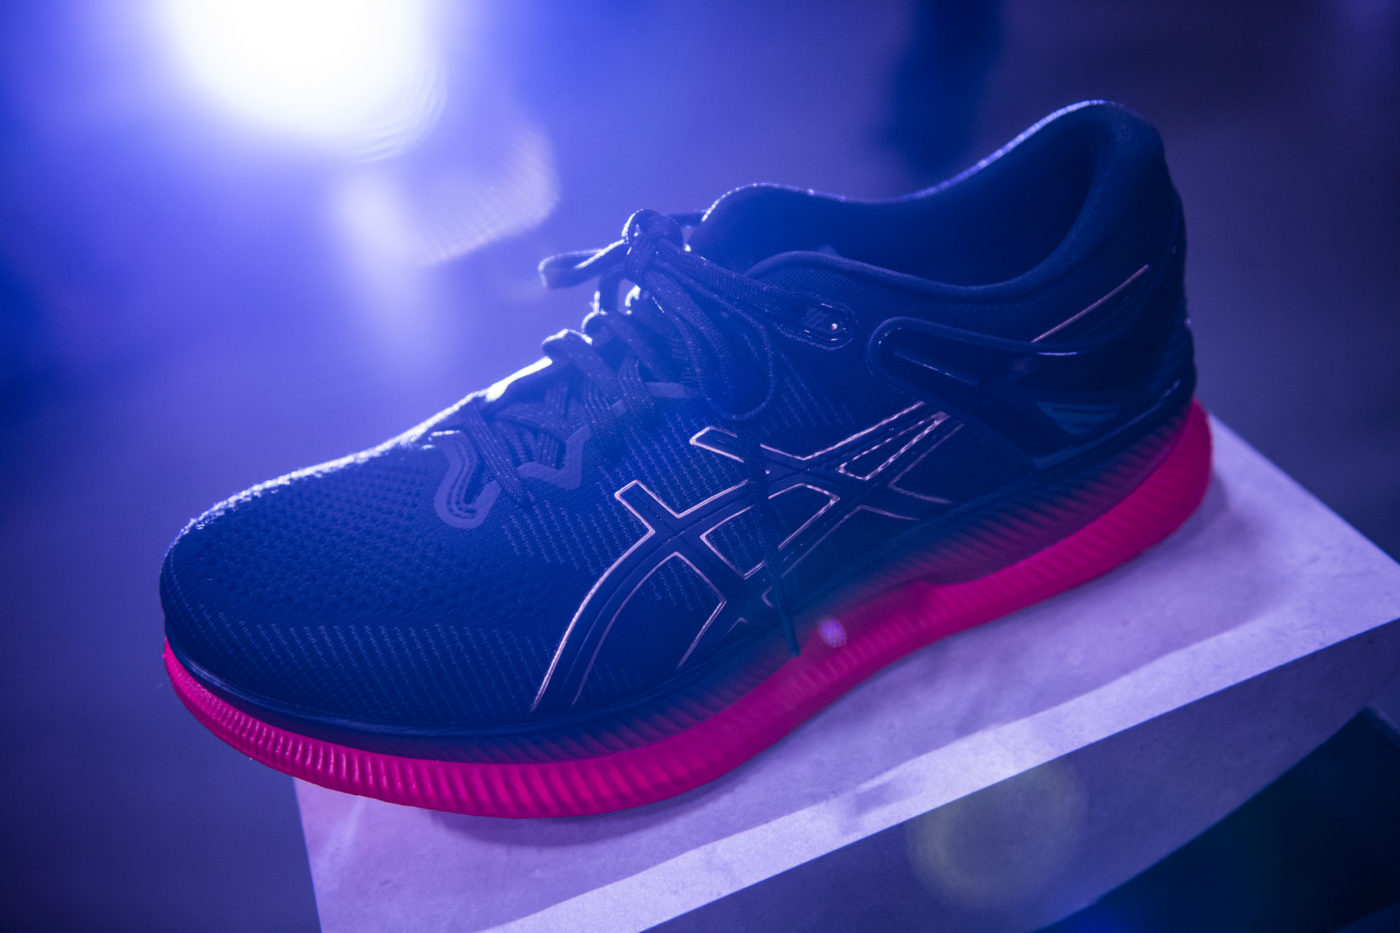 chaussures-course-a-pied-asics-metaride-6